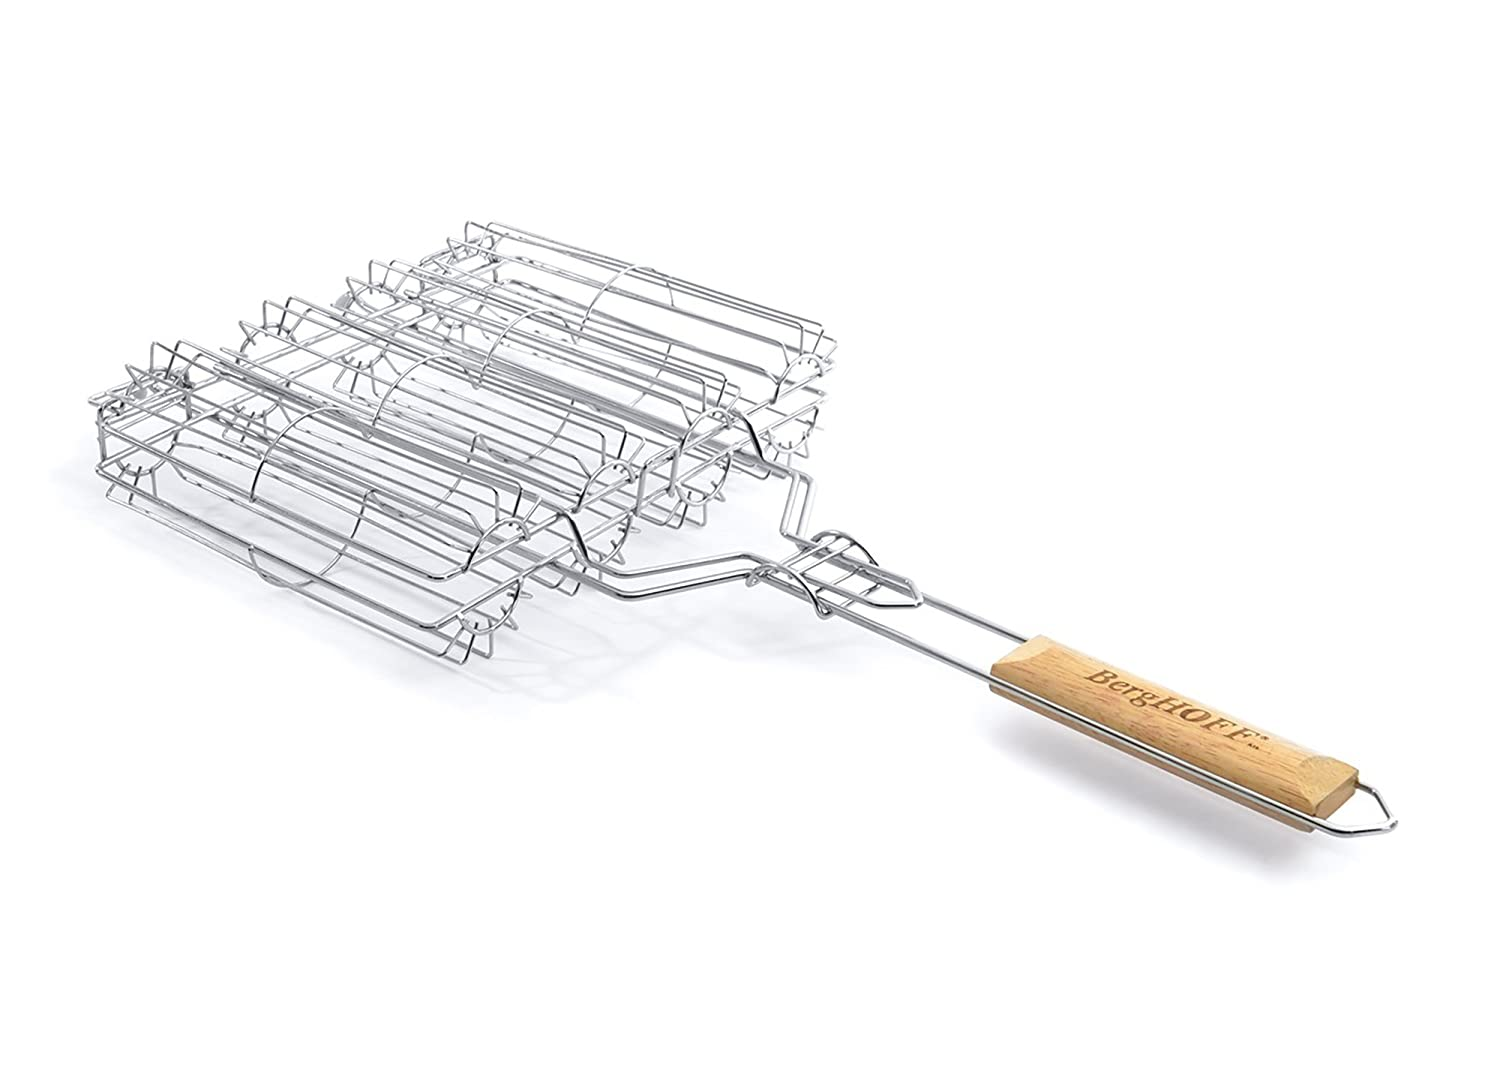 BergHOFF 4490304 Non-Stick Vegetable BBQ Grilling Basket with Wood Handle - Silver